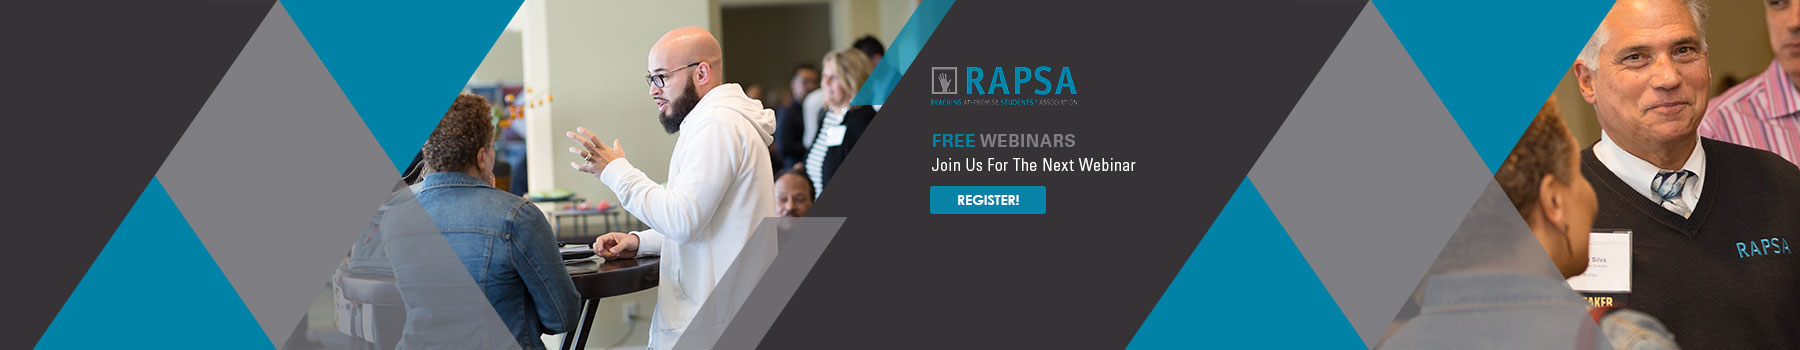 RAPSA-banner-home-webinars-long-7